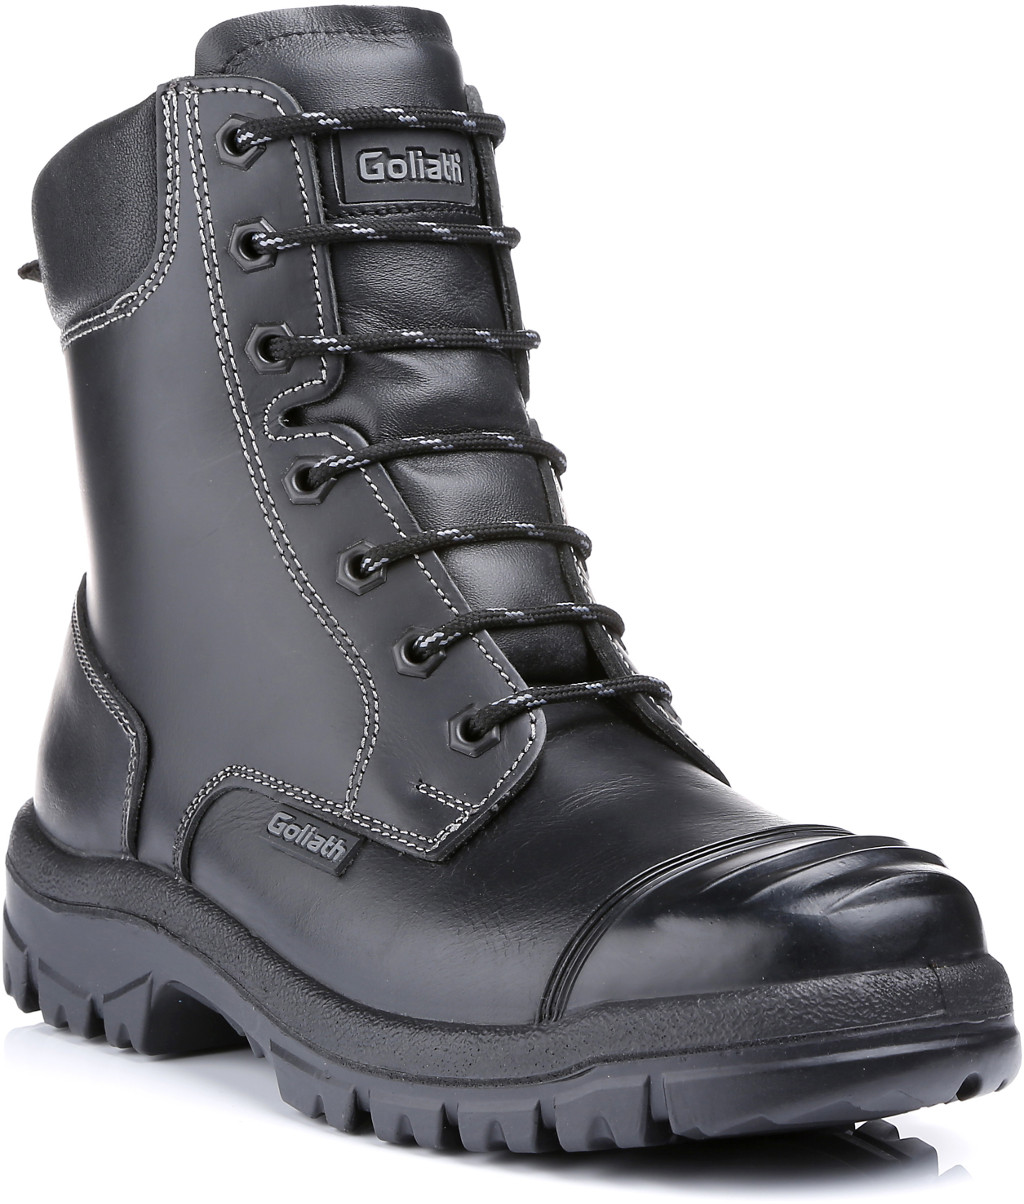 Goliath Groundmaster Safety Boot With Side Zip Gol601